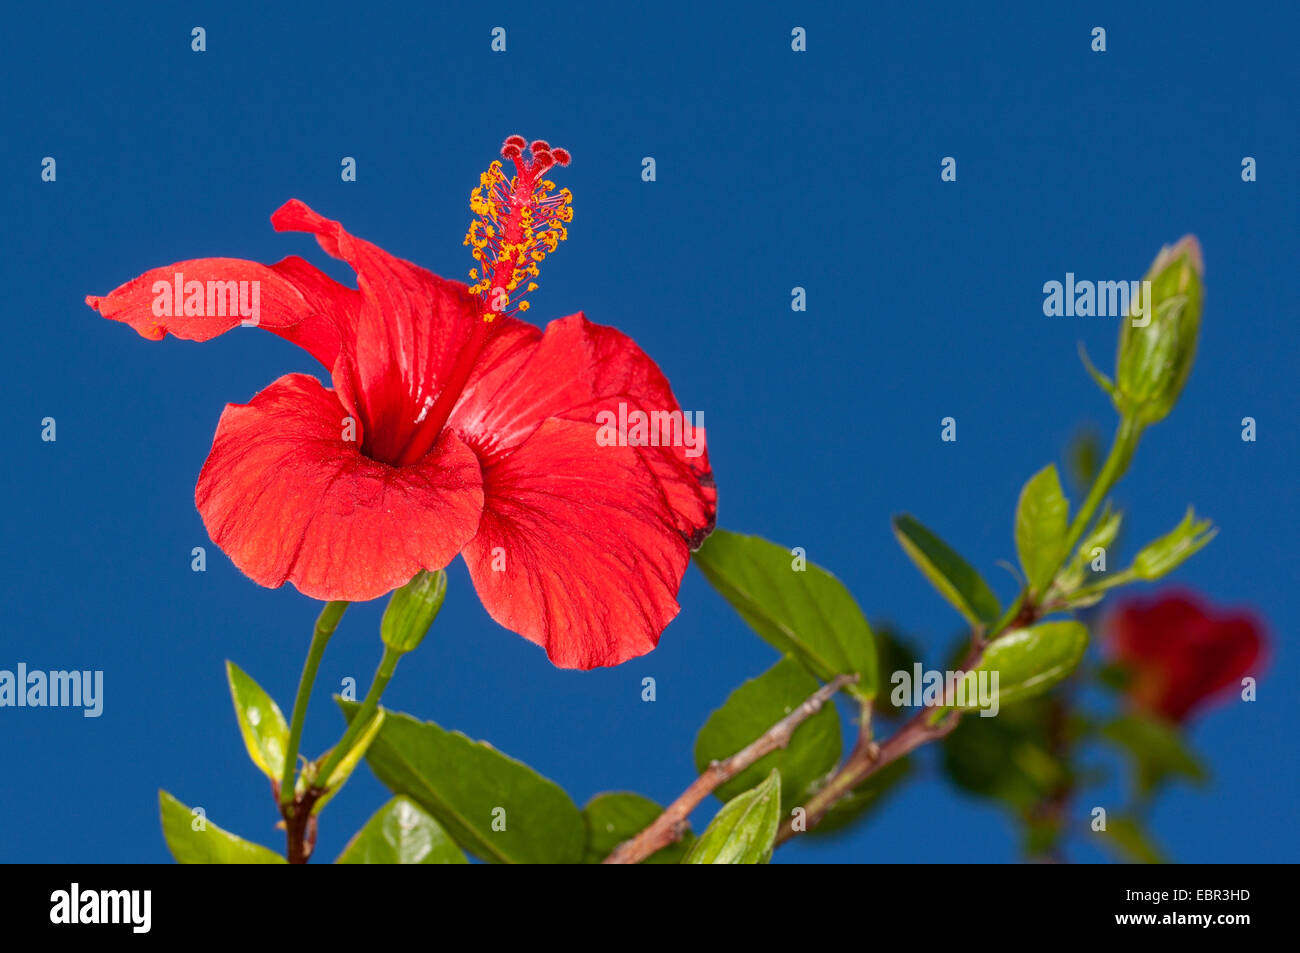 Edible hibiscus flower stock photos edible hibiscus flower stock chinese hibiscus hibiscus rosa sinensis flower against blue background stock image izmirmasajfo